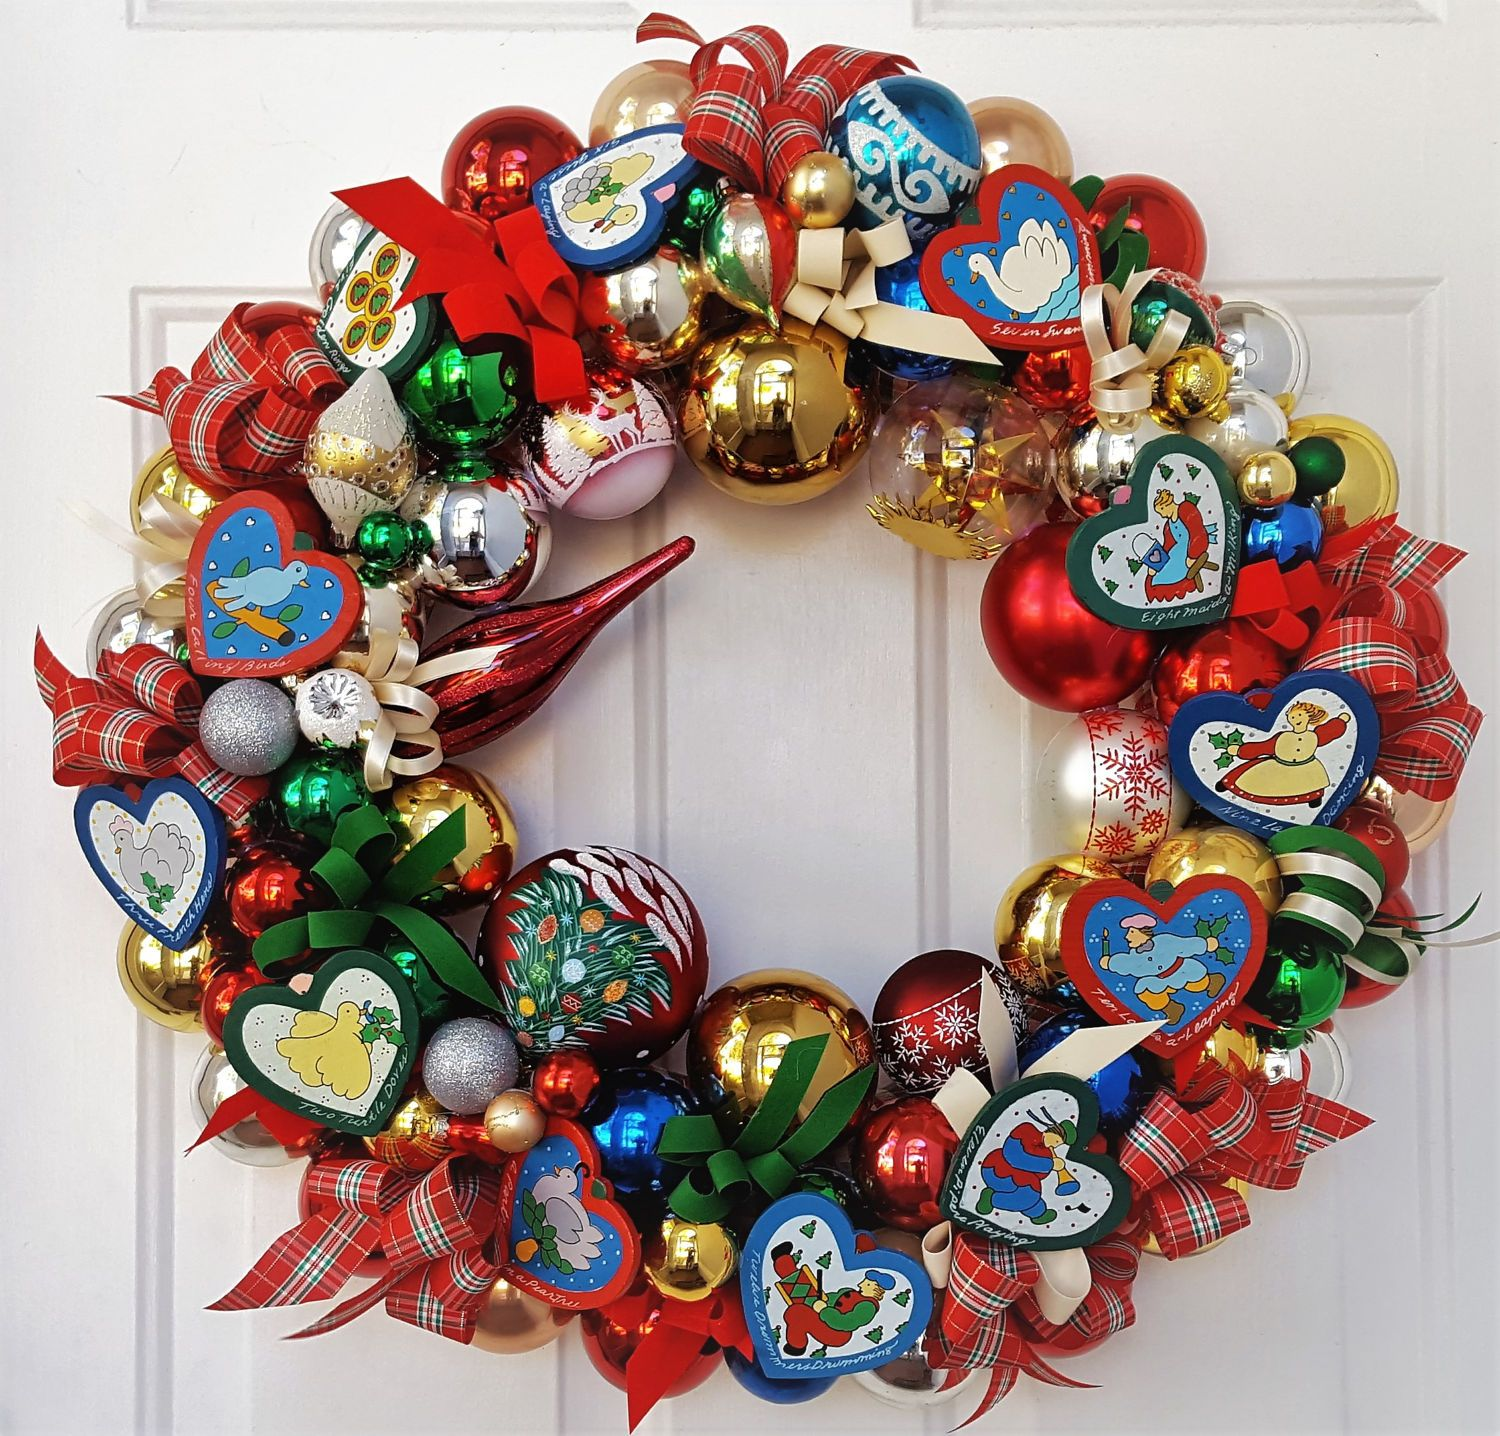 Vintage 12 Days Of Christmas 22 Glass Wood Christmas Holiday Ornament Wreath Hand Crafted Ornament Wreath Vintage Christmas Ornaments 12 Days Of Christmas